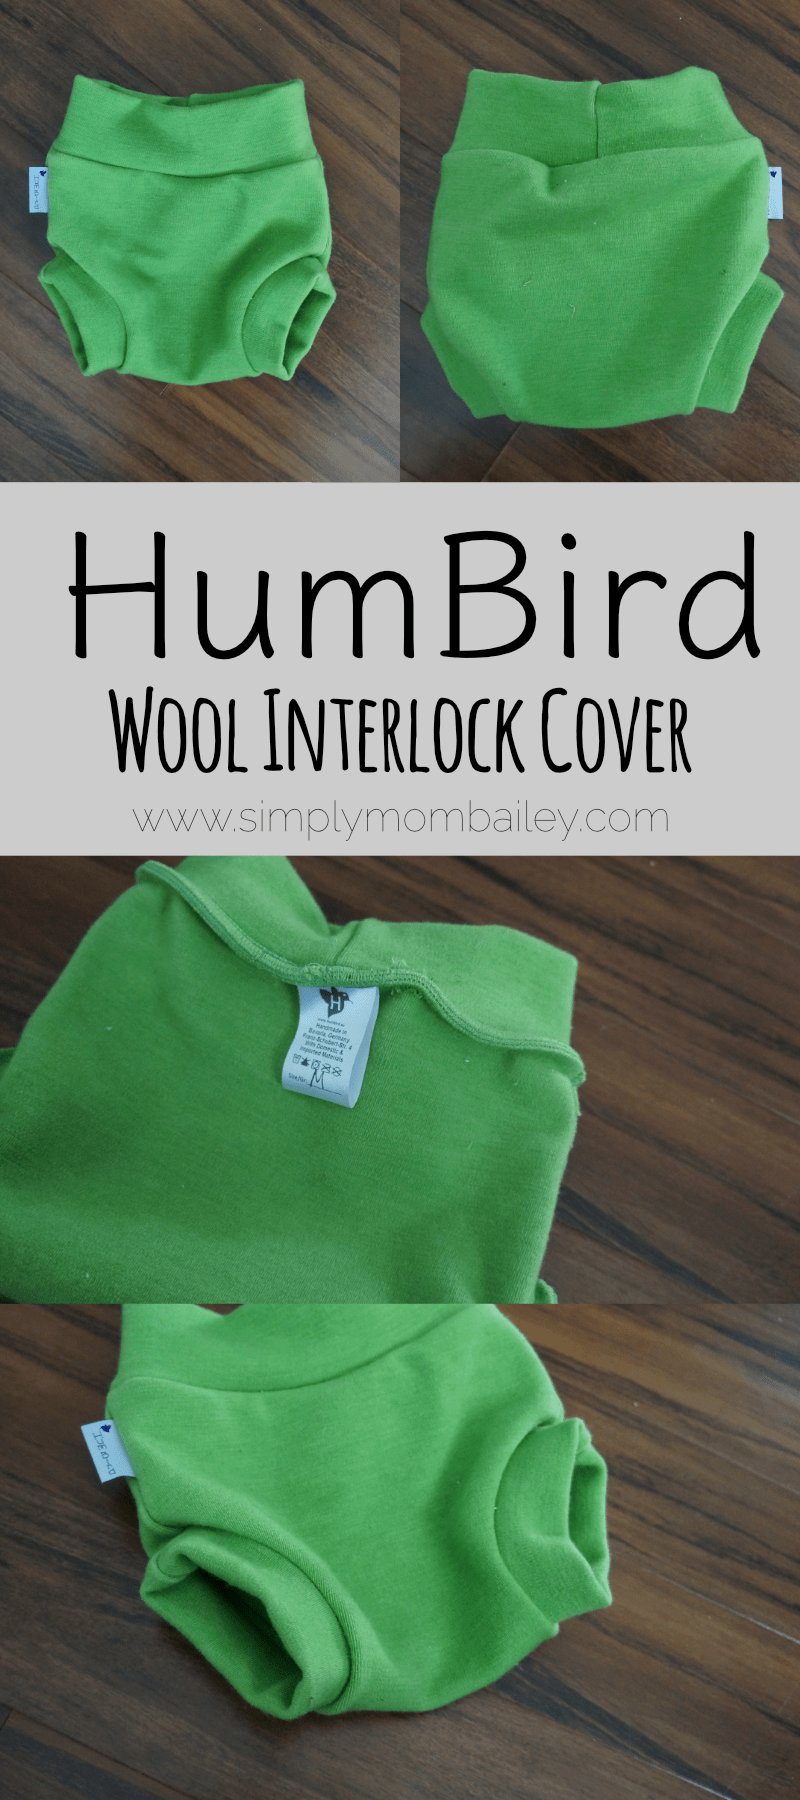 HumBird Wool Interlock Cover - Wool Cover - Wool - Cloth Diaper - Made in Germany - WAHM - Babies - Night Time Cloth Diaper